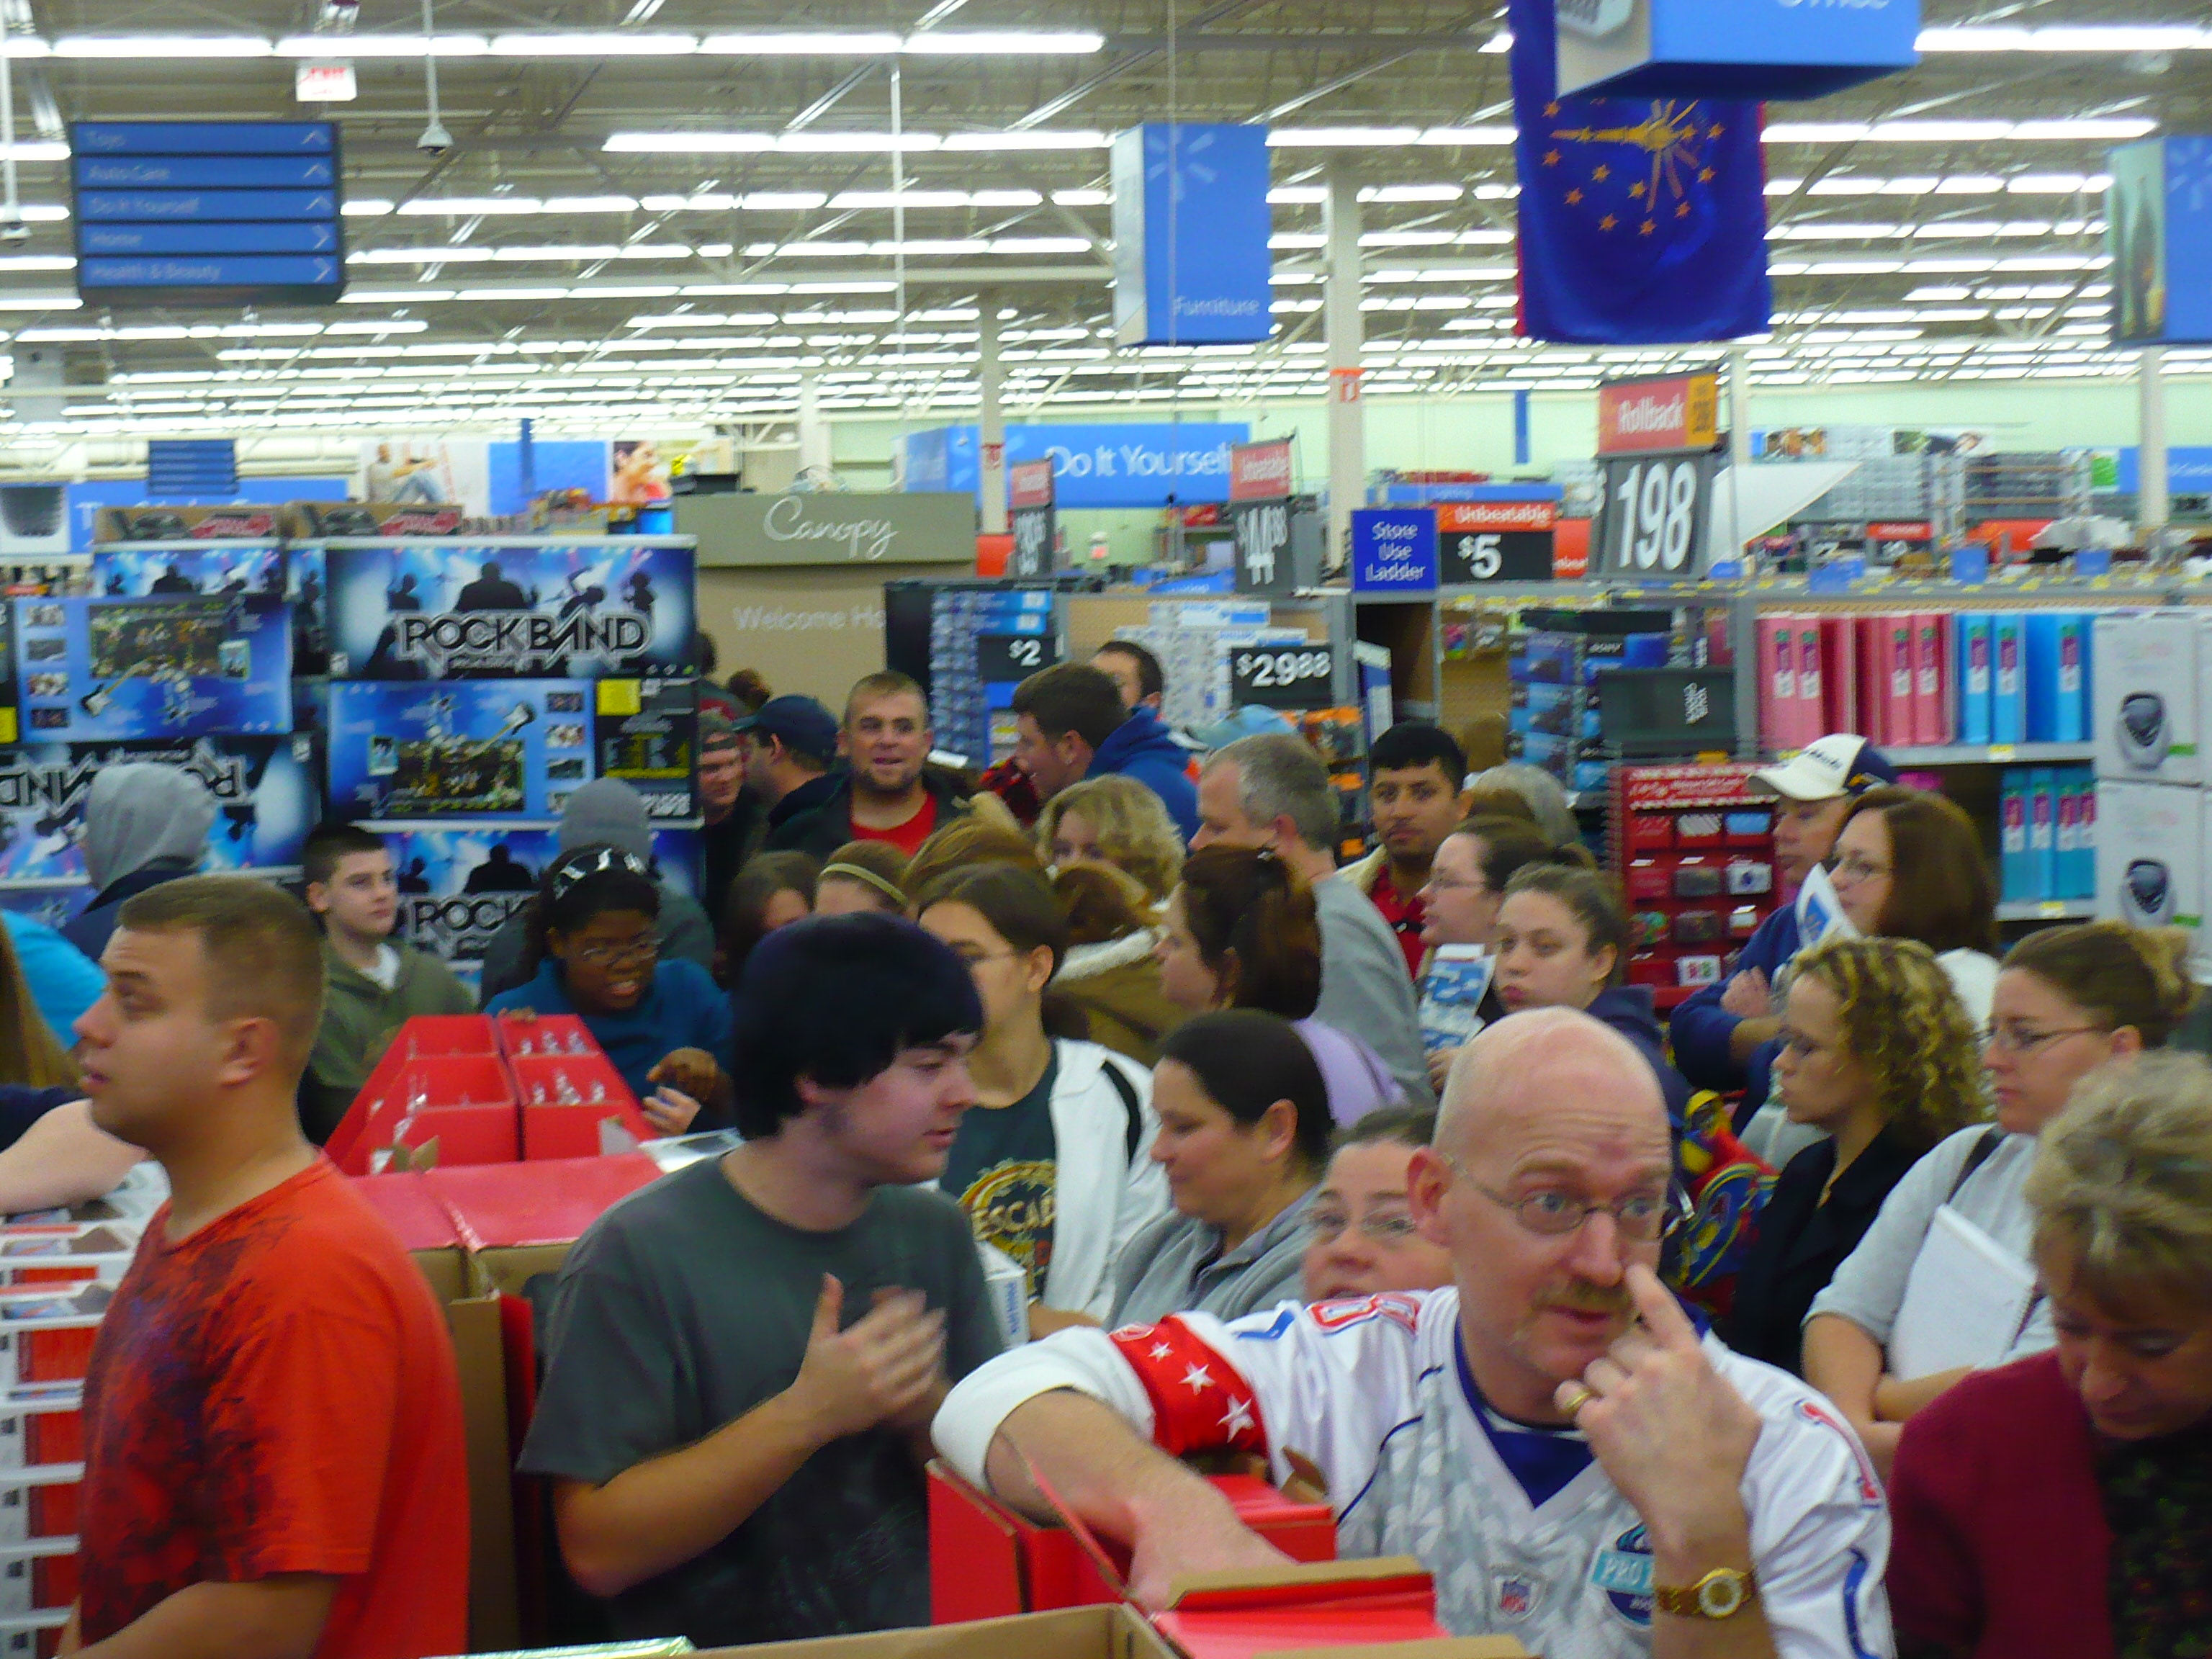 A Wal-Mart on Black Friday